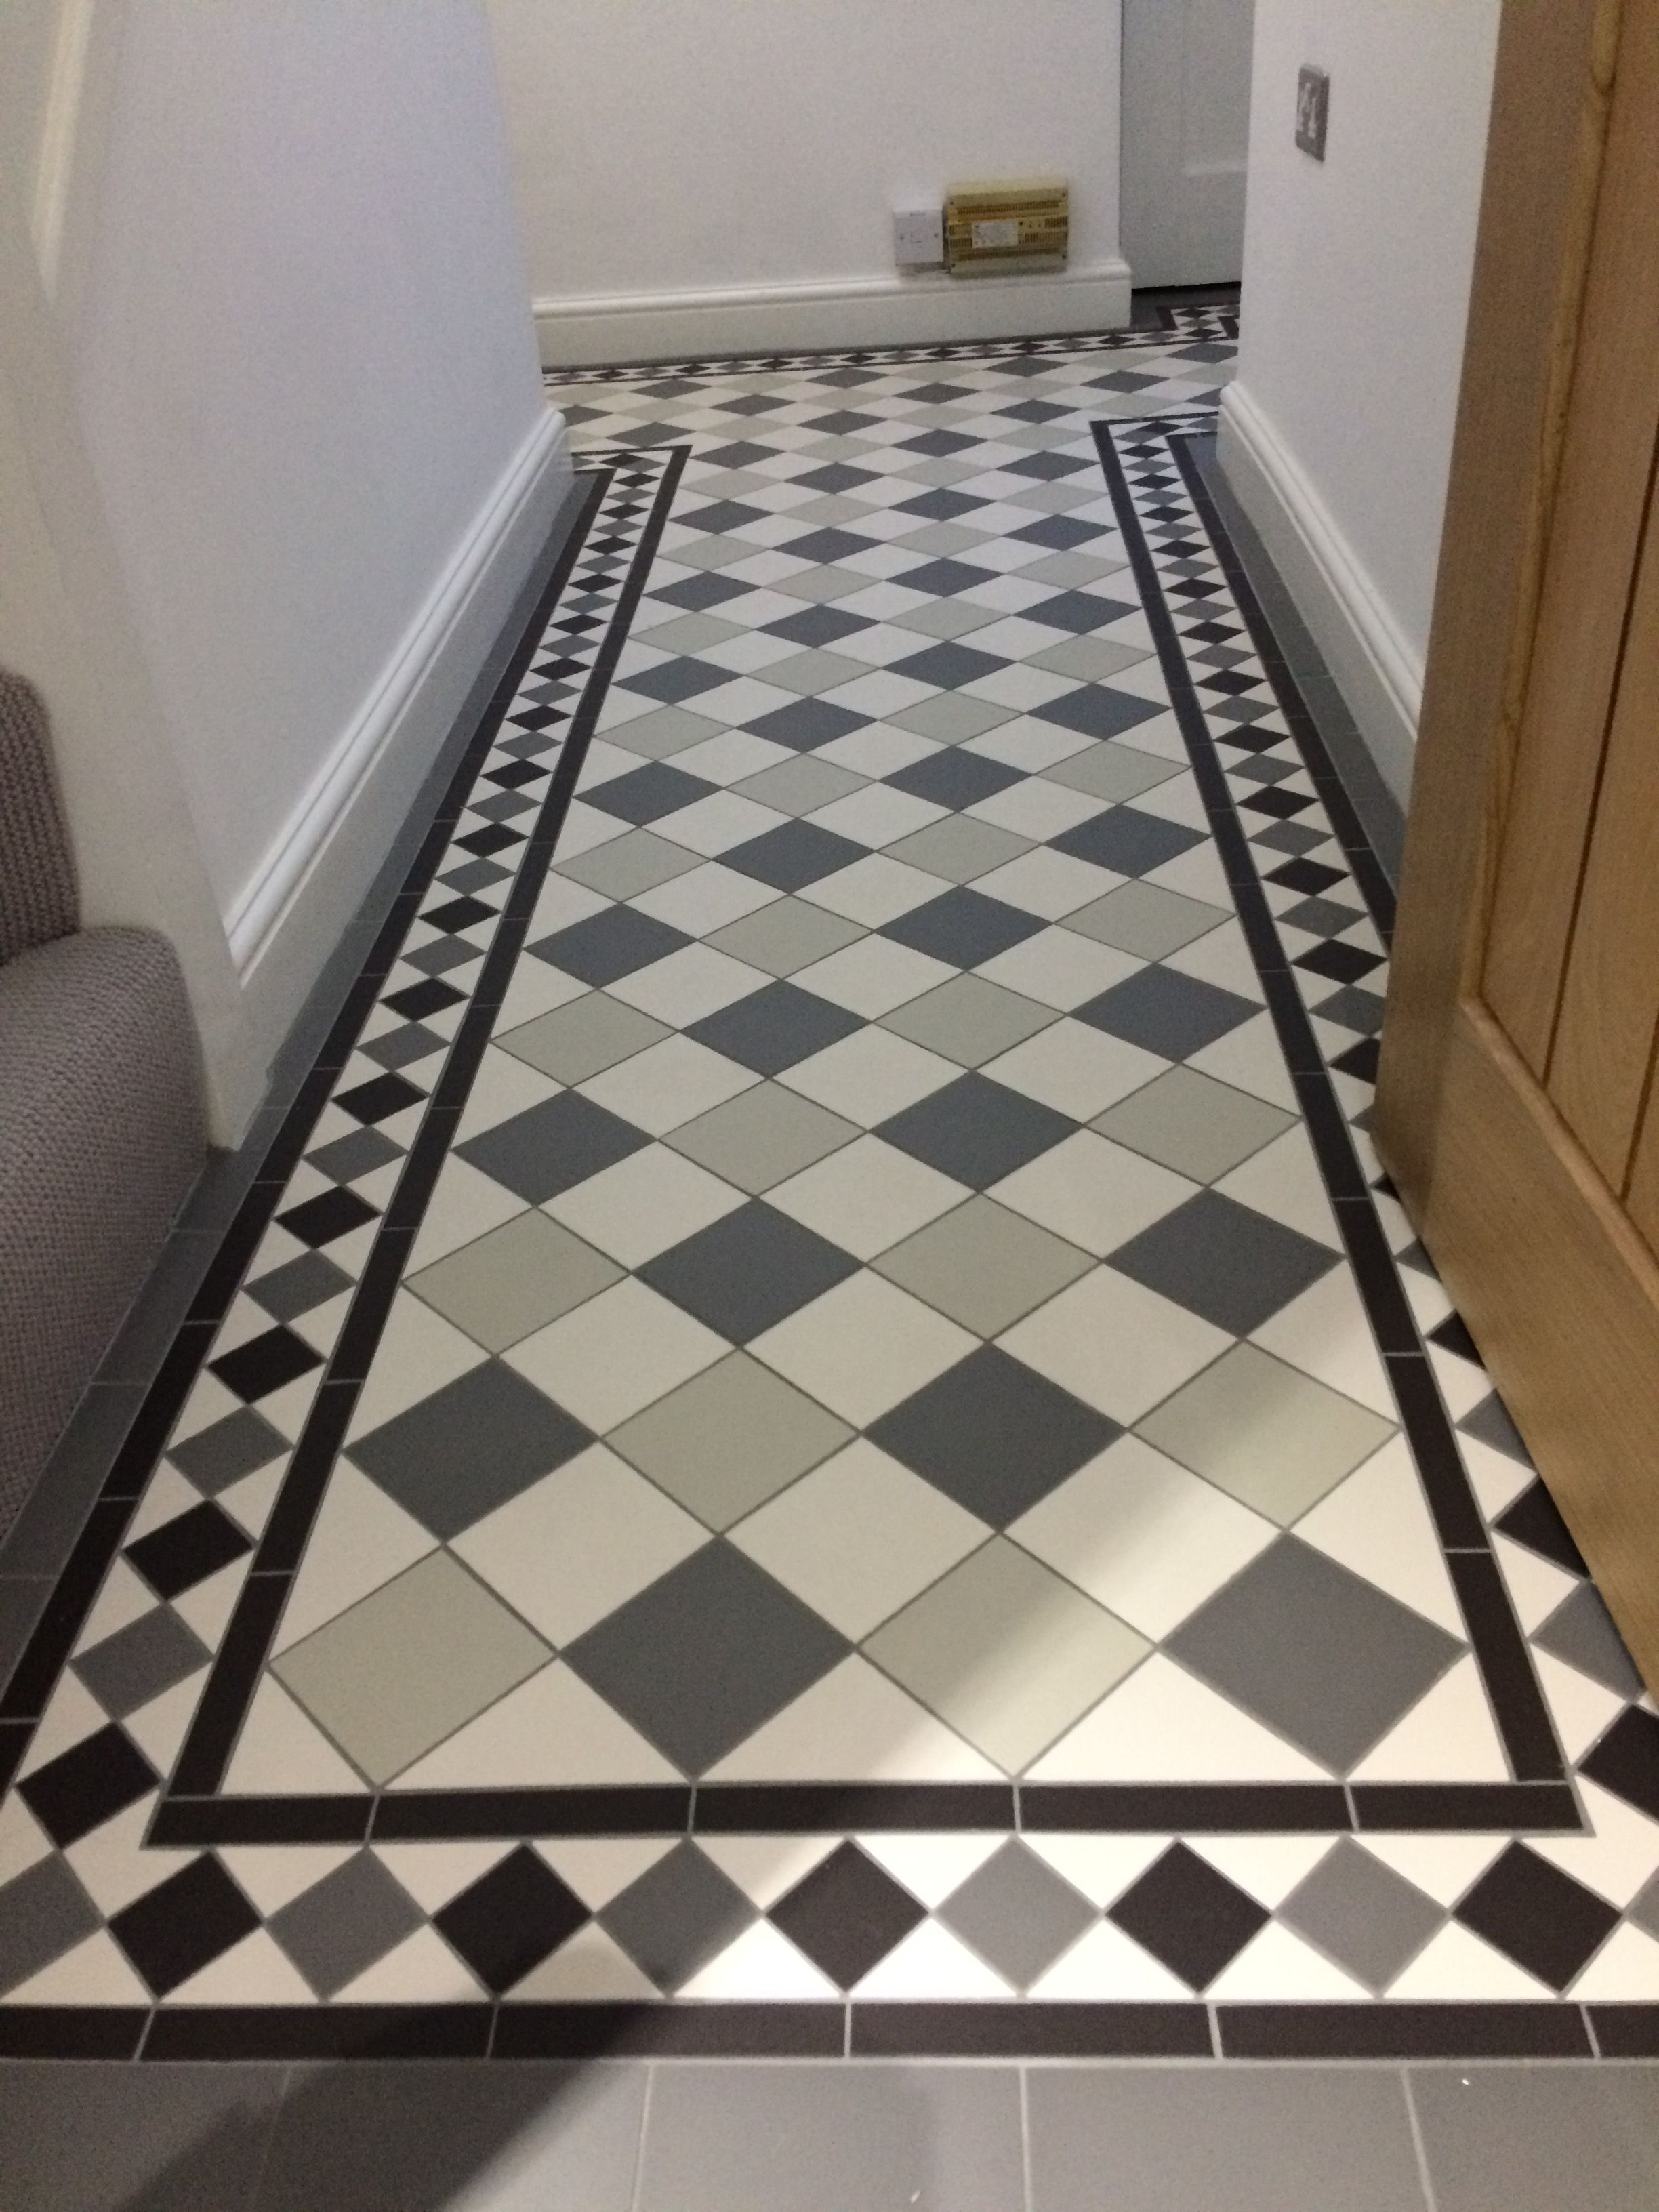 Victorian Floor Tiles Gallery Original Style Floors Period Floors Hallway Flooring Victorian Hallway Small Hallways